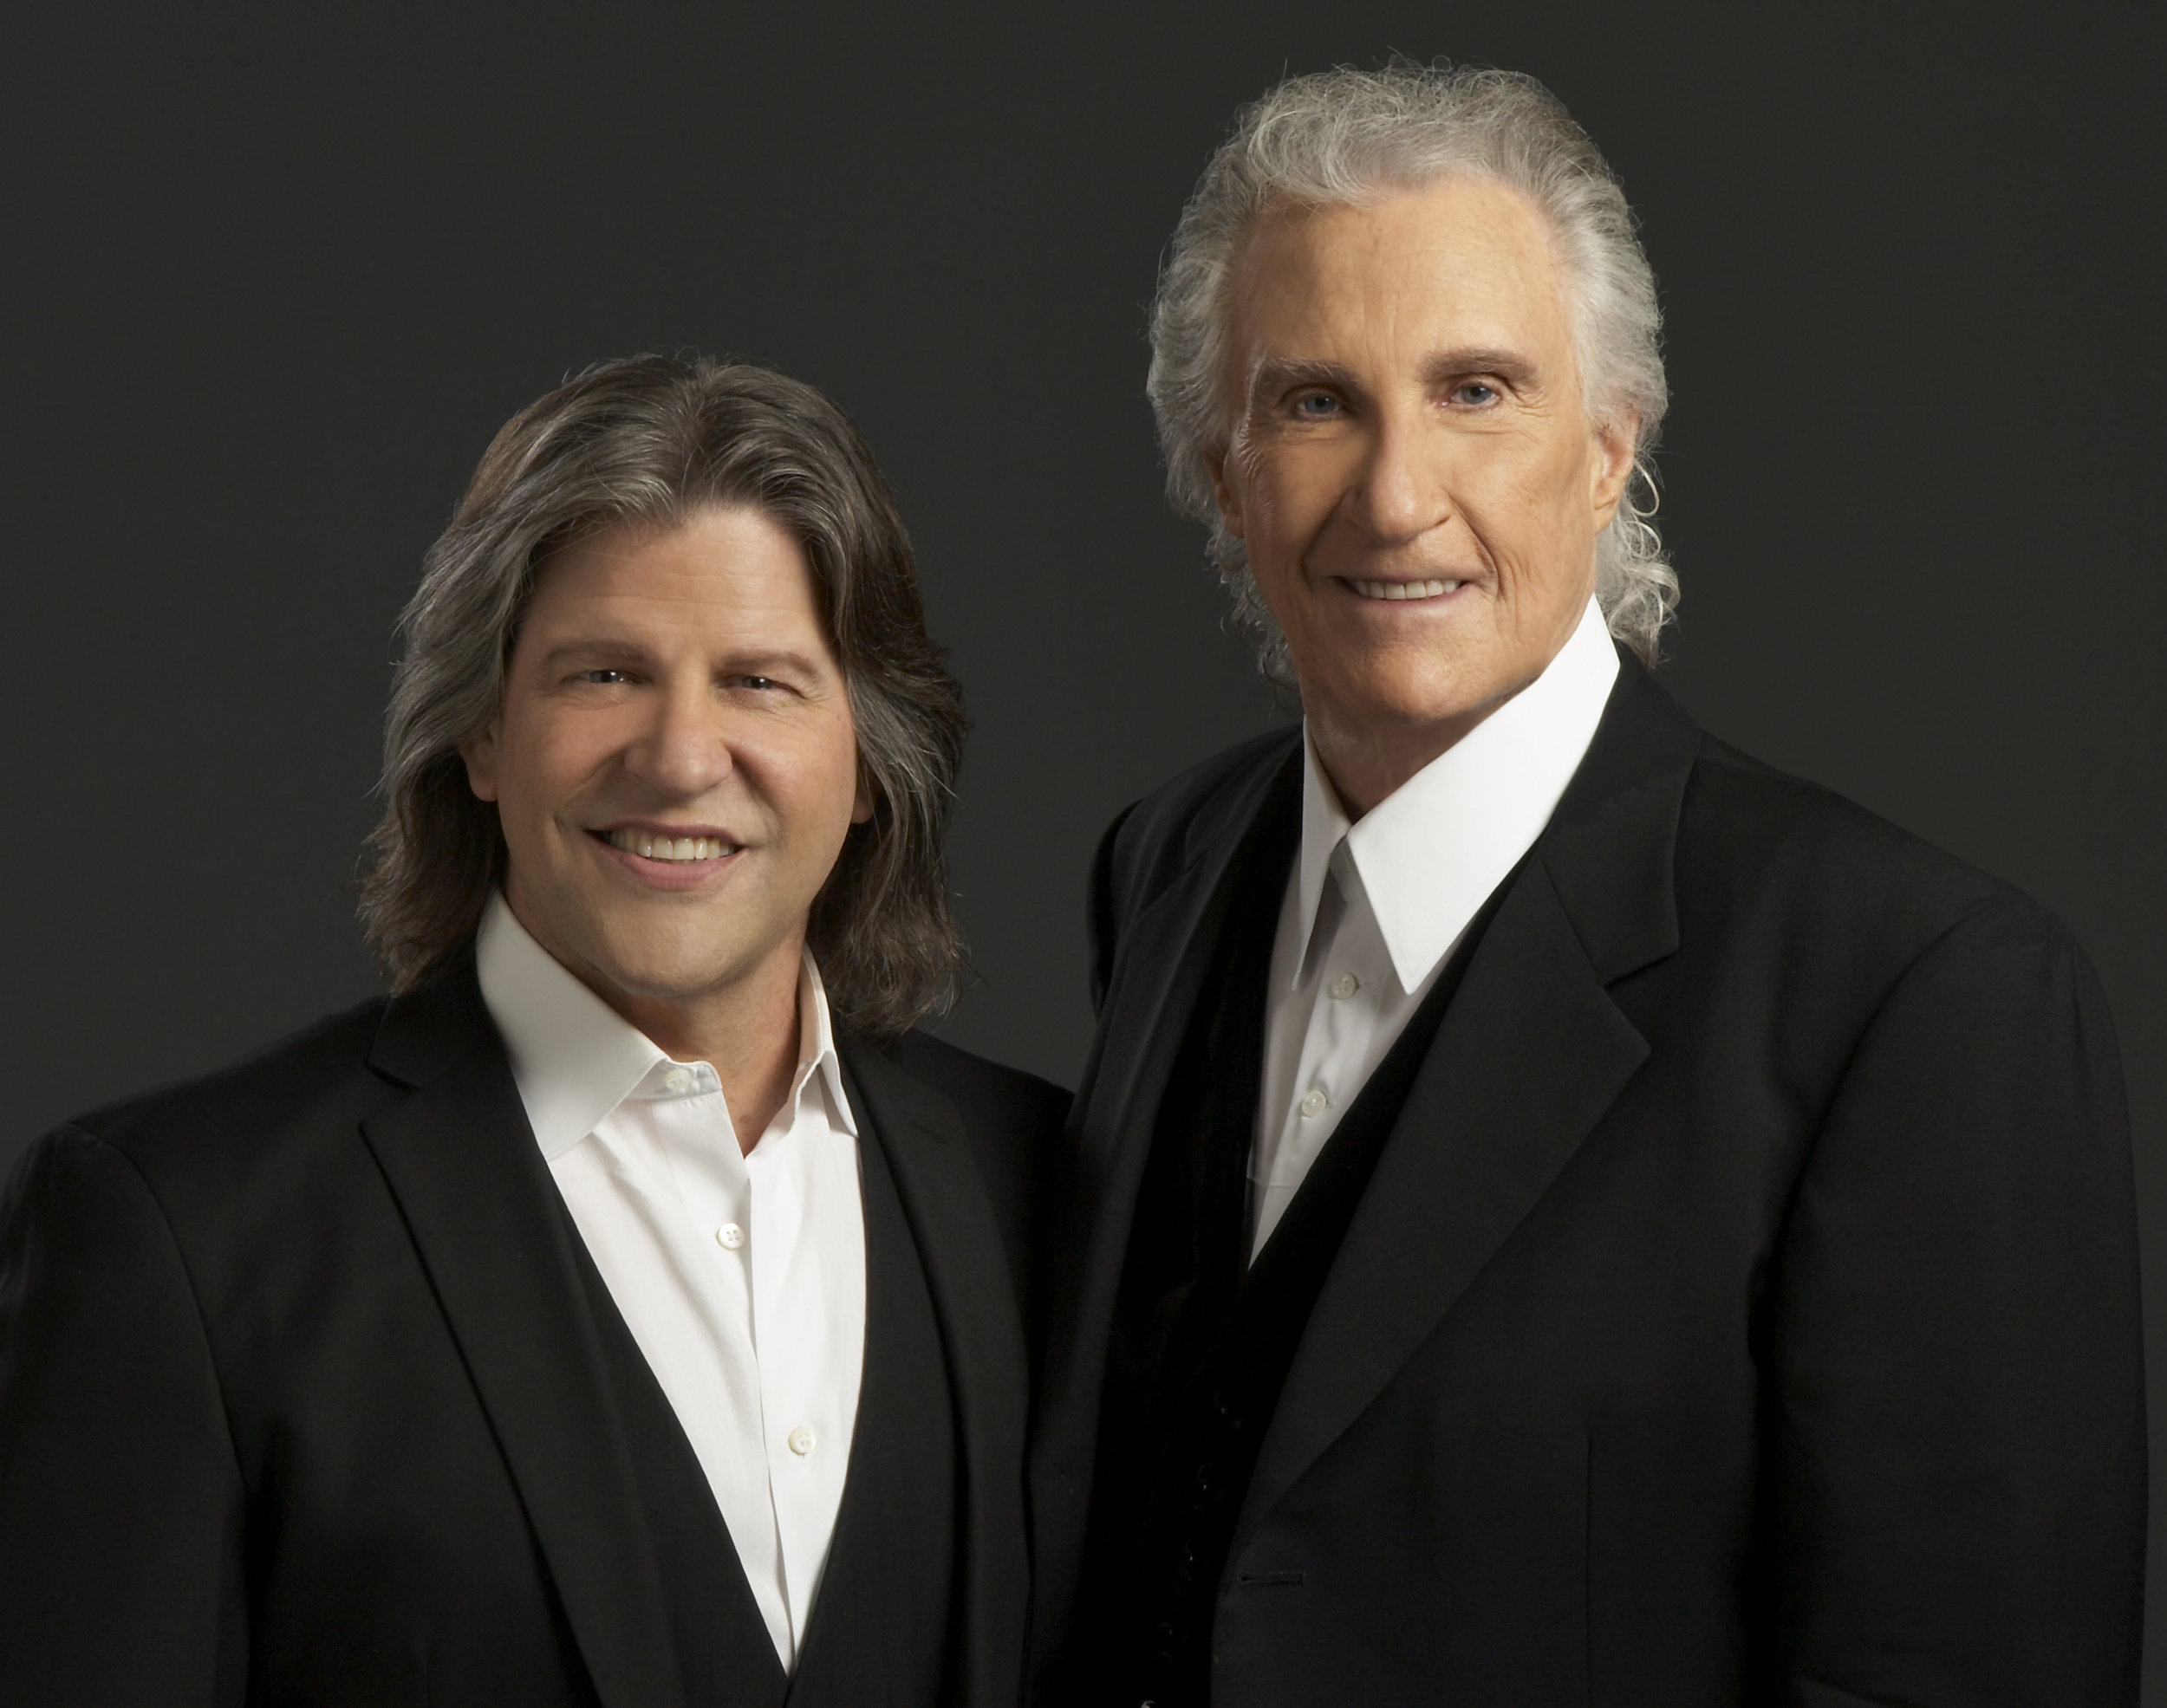 The Righteous Brothers will perform July 8 at the Sands Bethlehem Event Center in Bethlehem.  (Courtesy Photo)